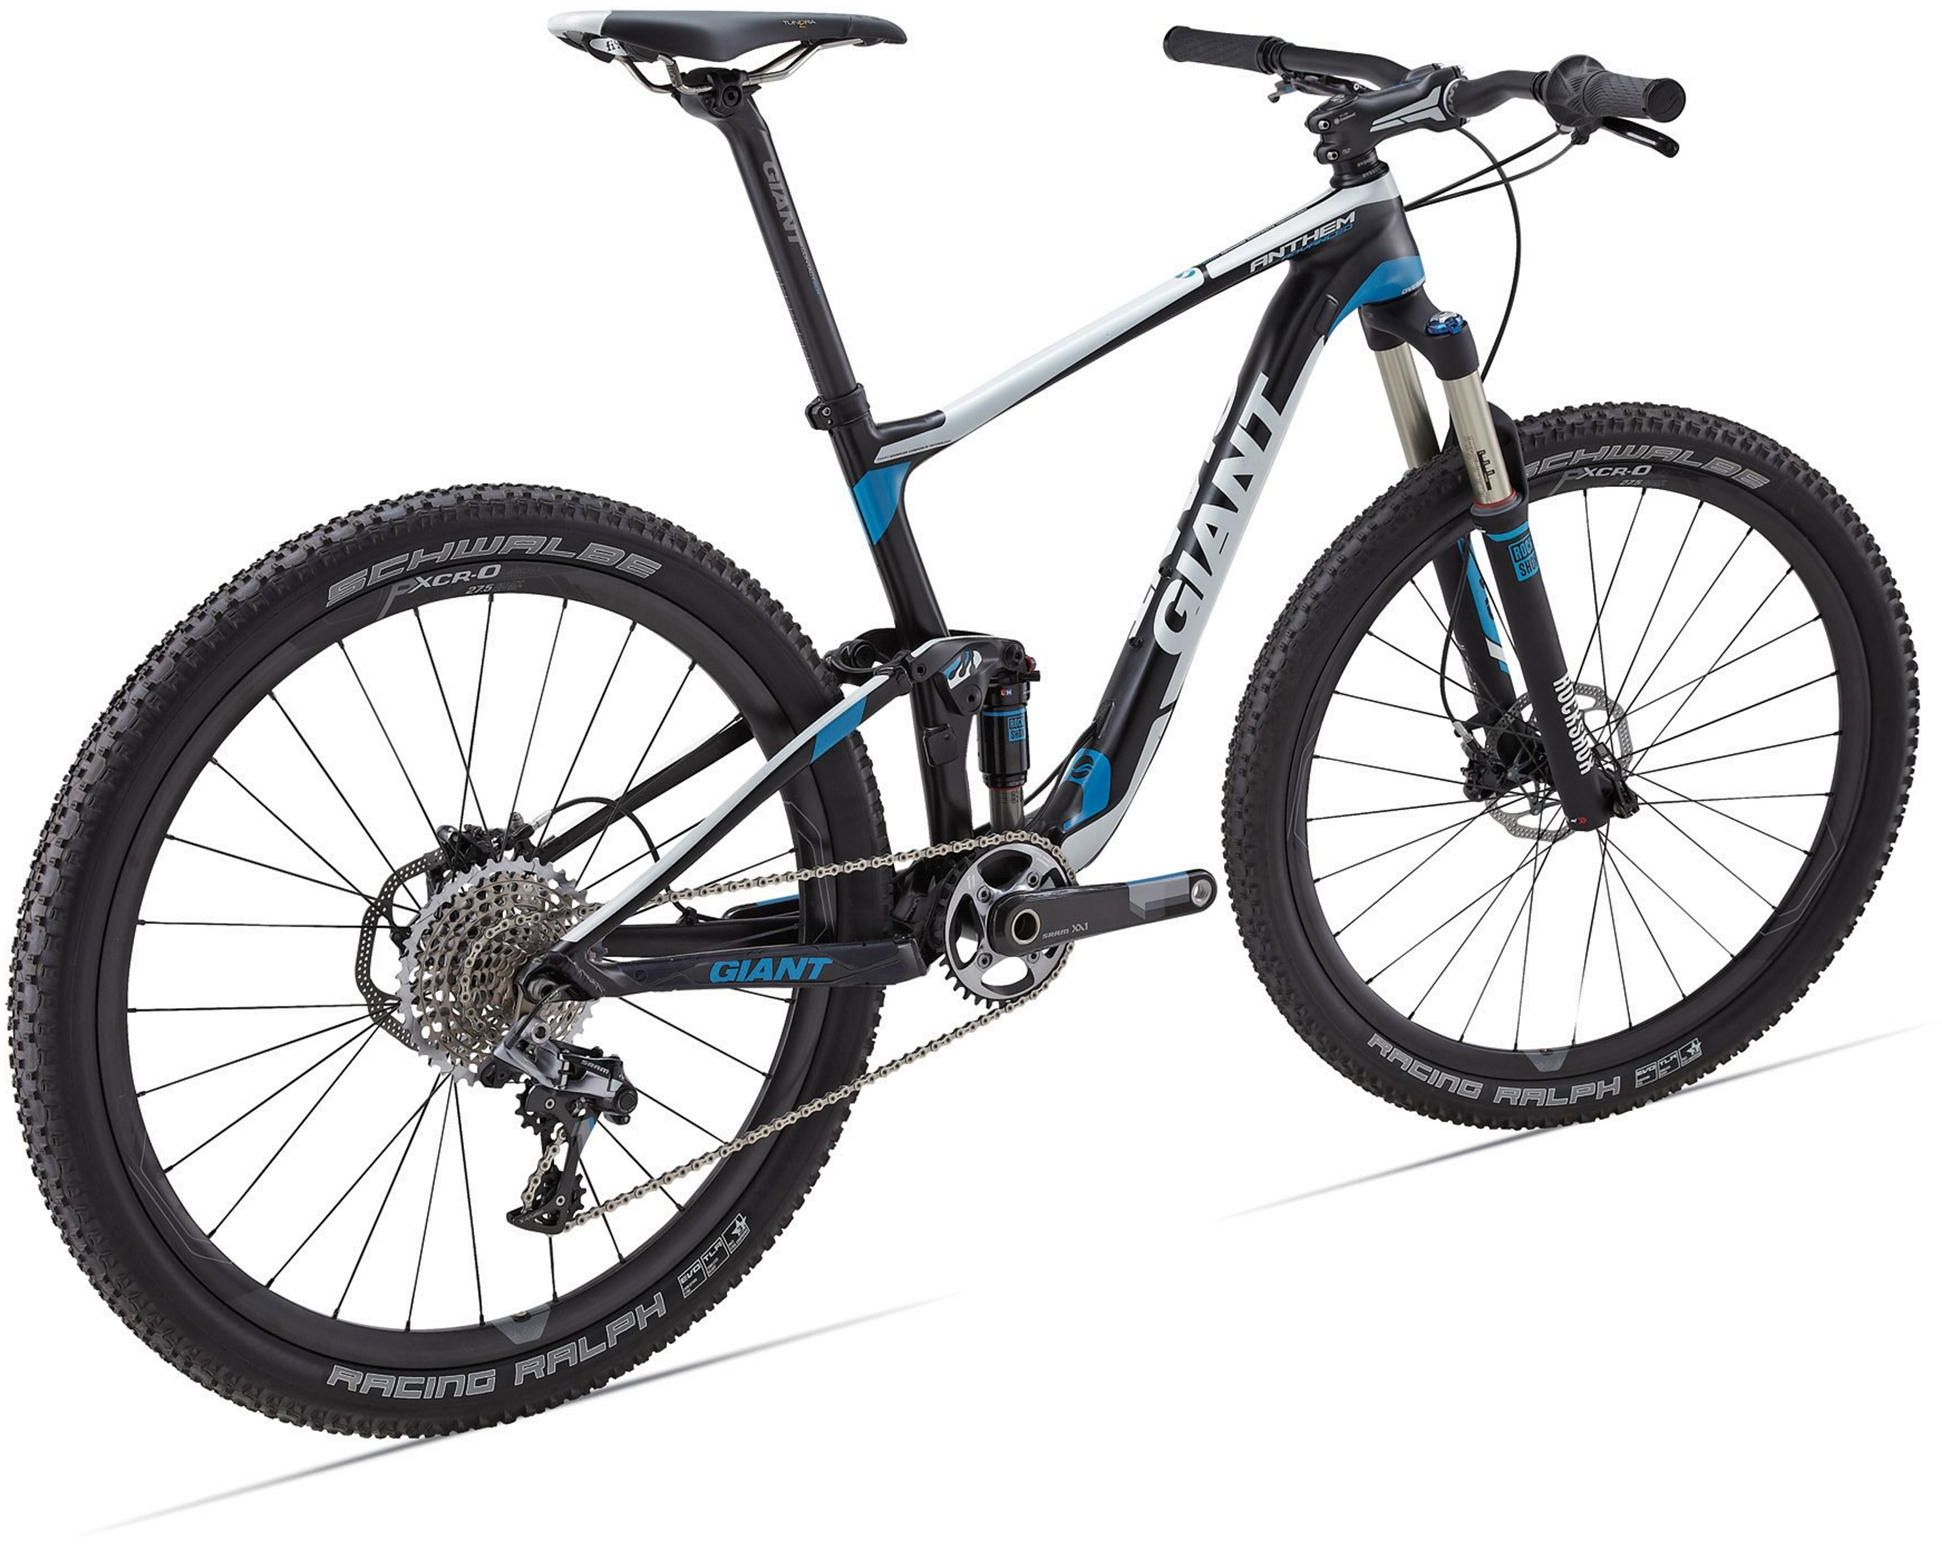 Giant Anthem Advanced 27.5 0 Team 2014–2015 review - The Bike List